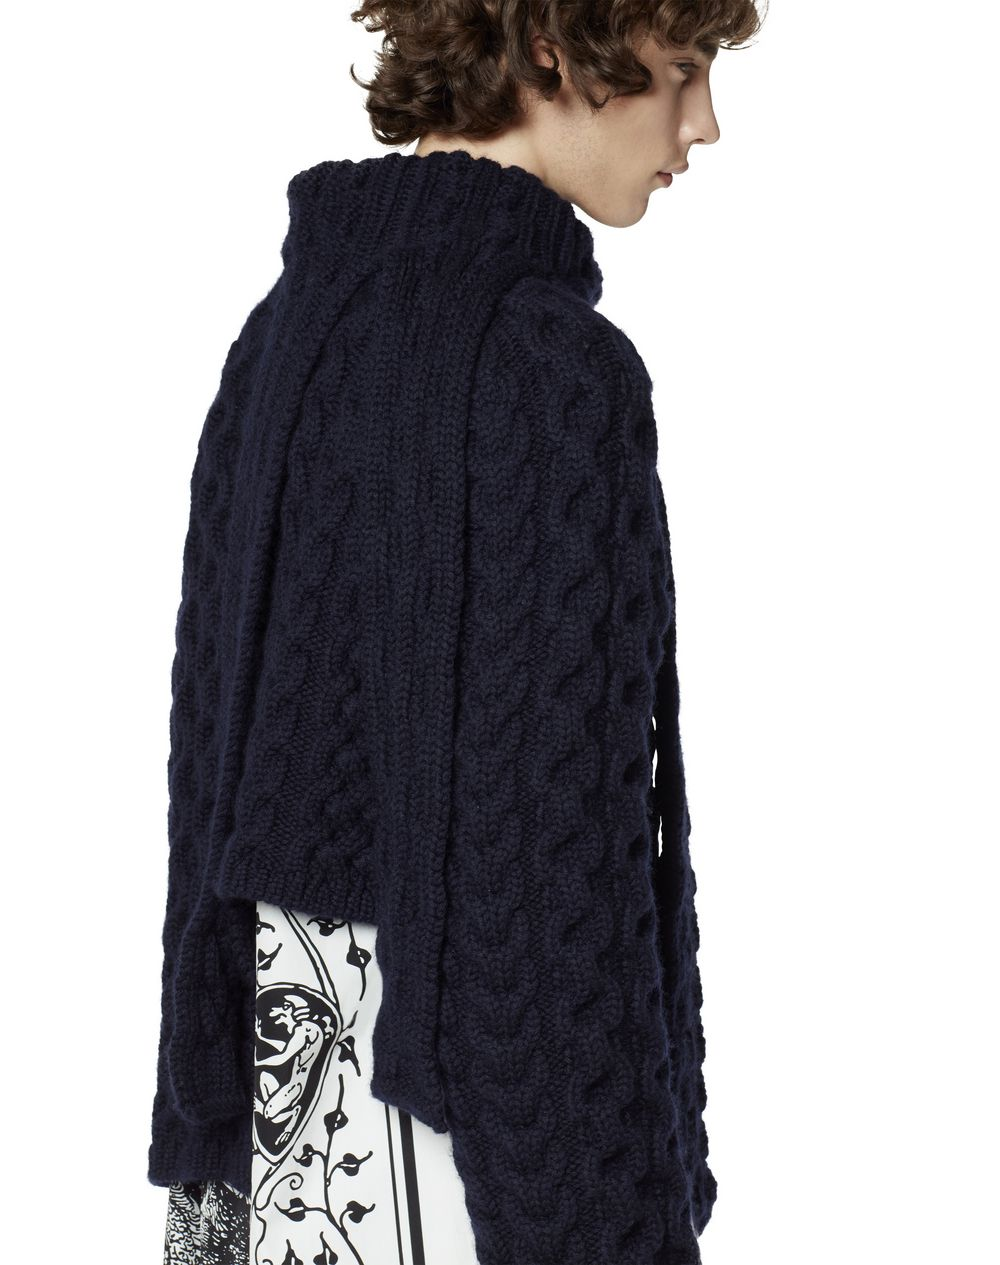 ASYMMETRICAL WOOL JUMPER - Lanvin